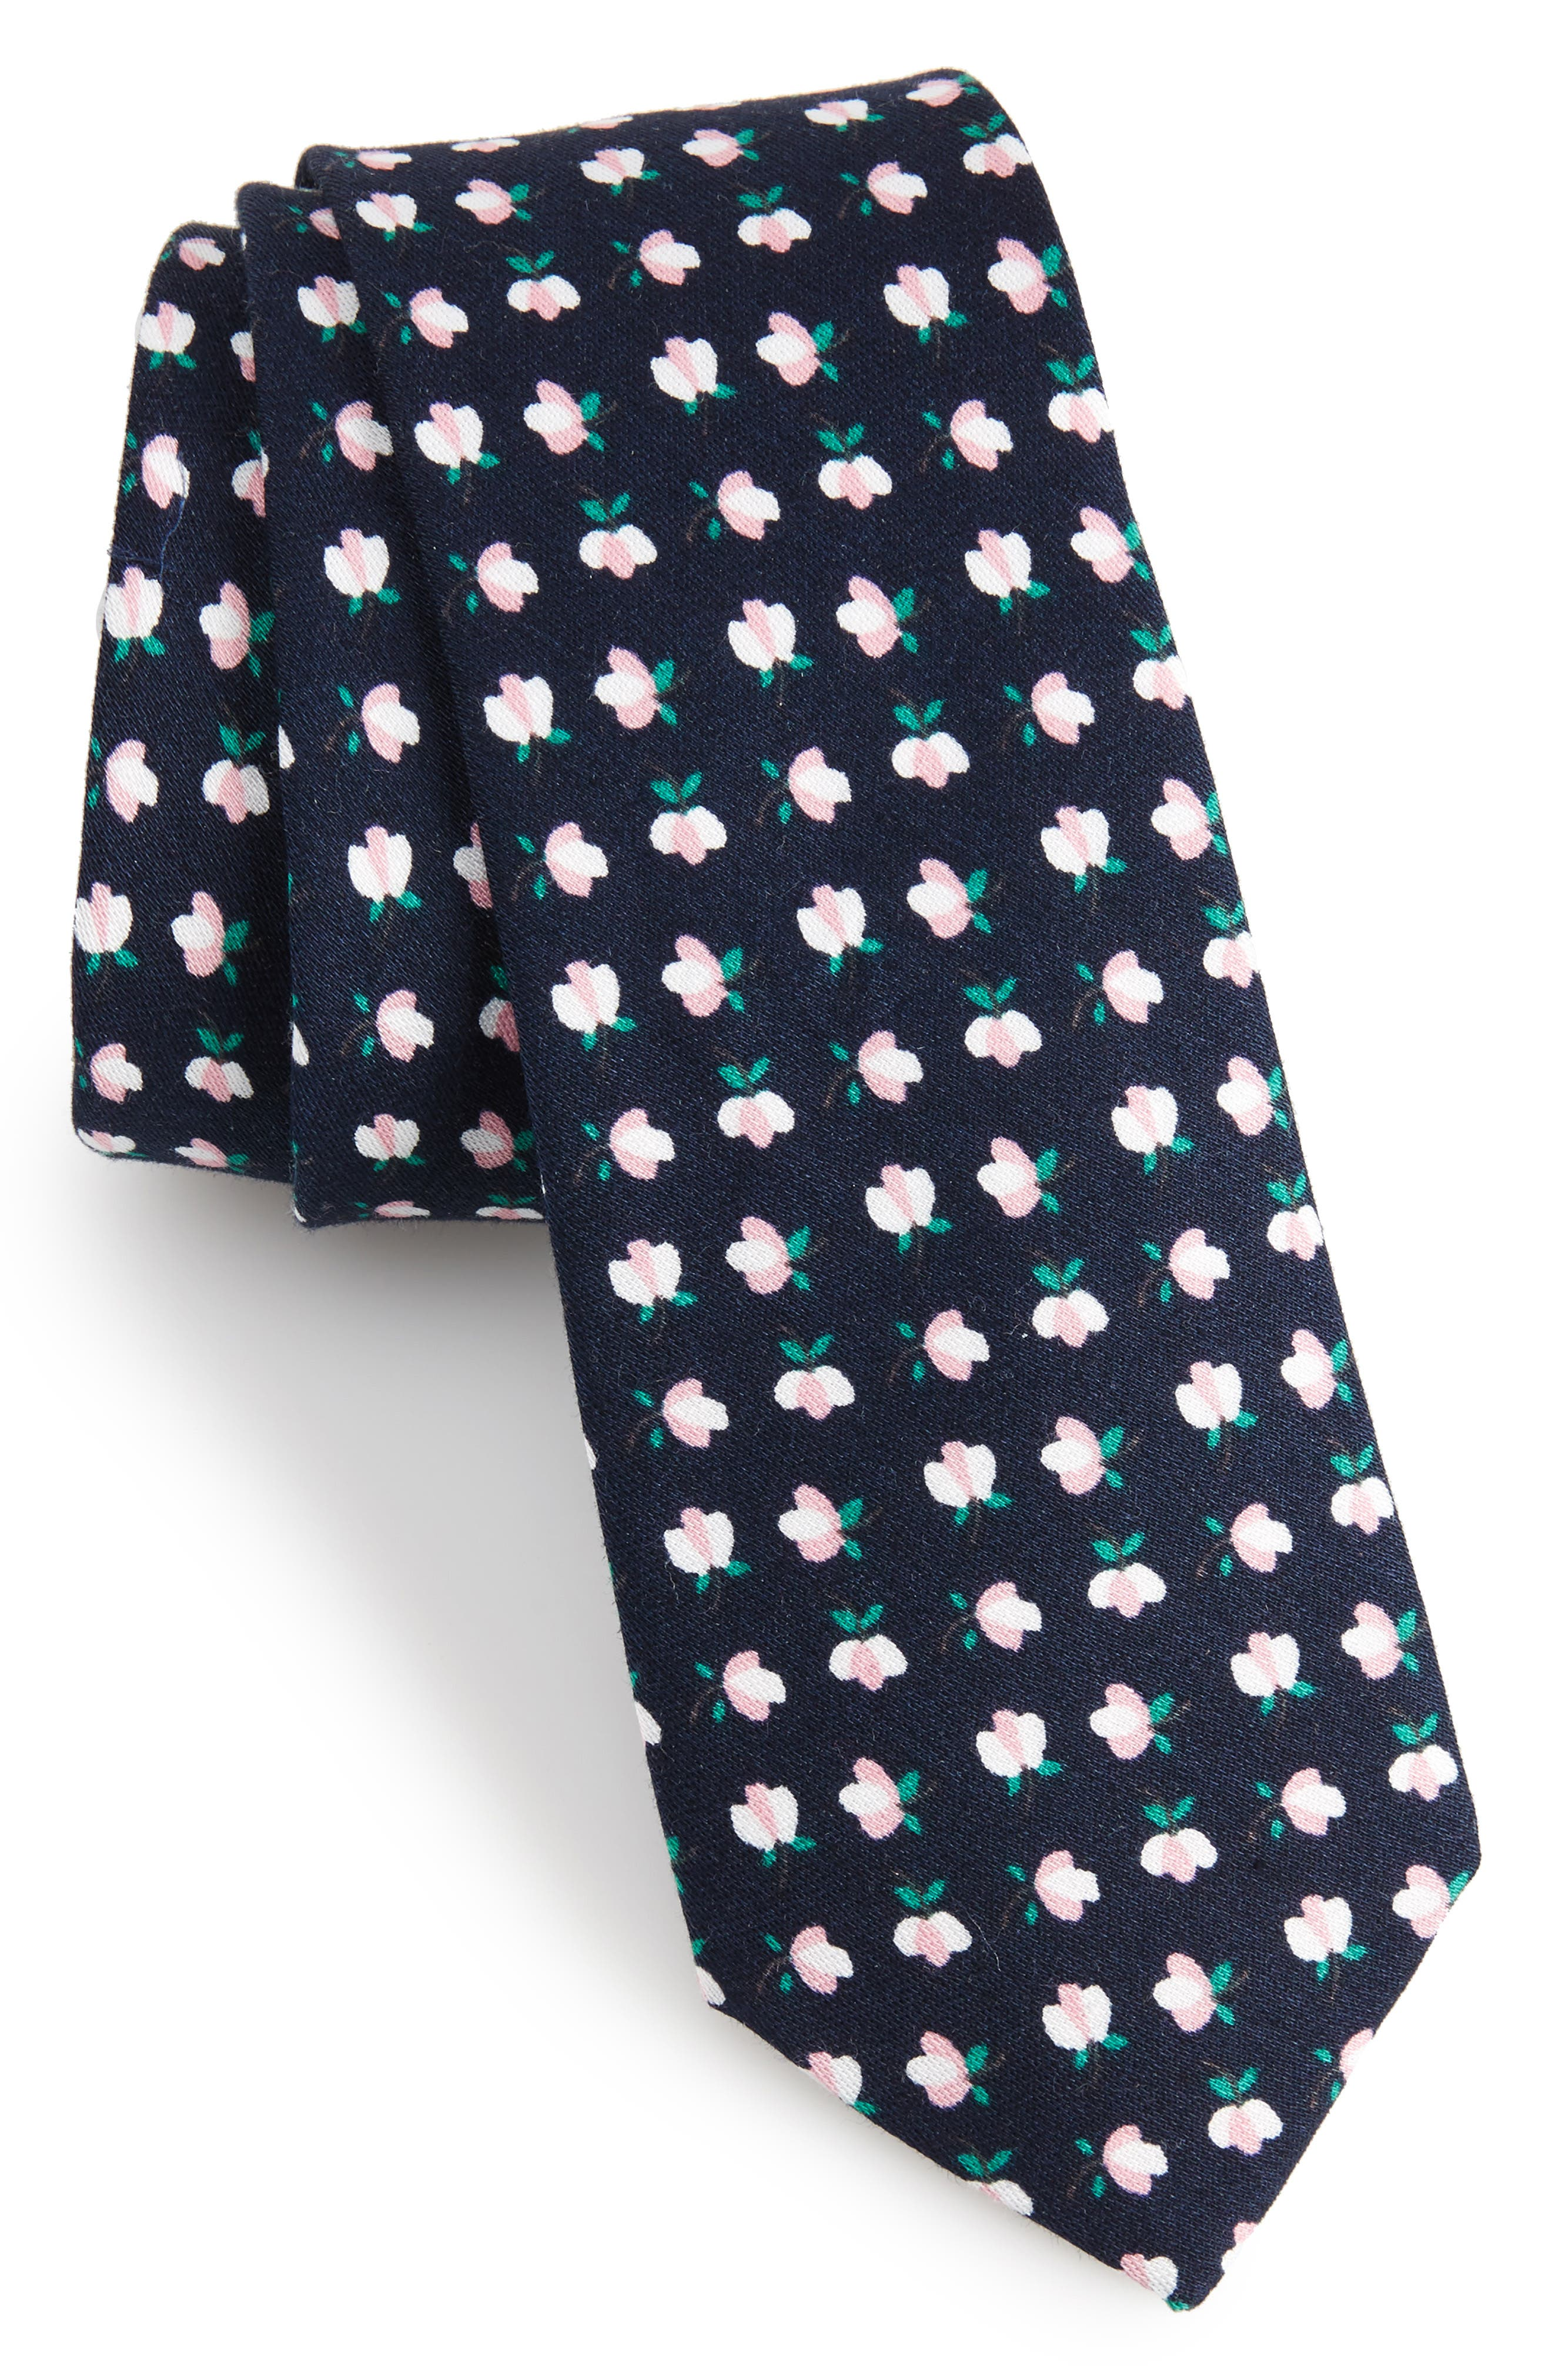 Rufford Mini Floral Cotton Tie,                             Main thumbnail 1, color,